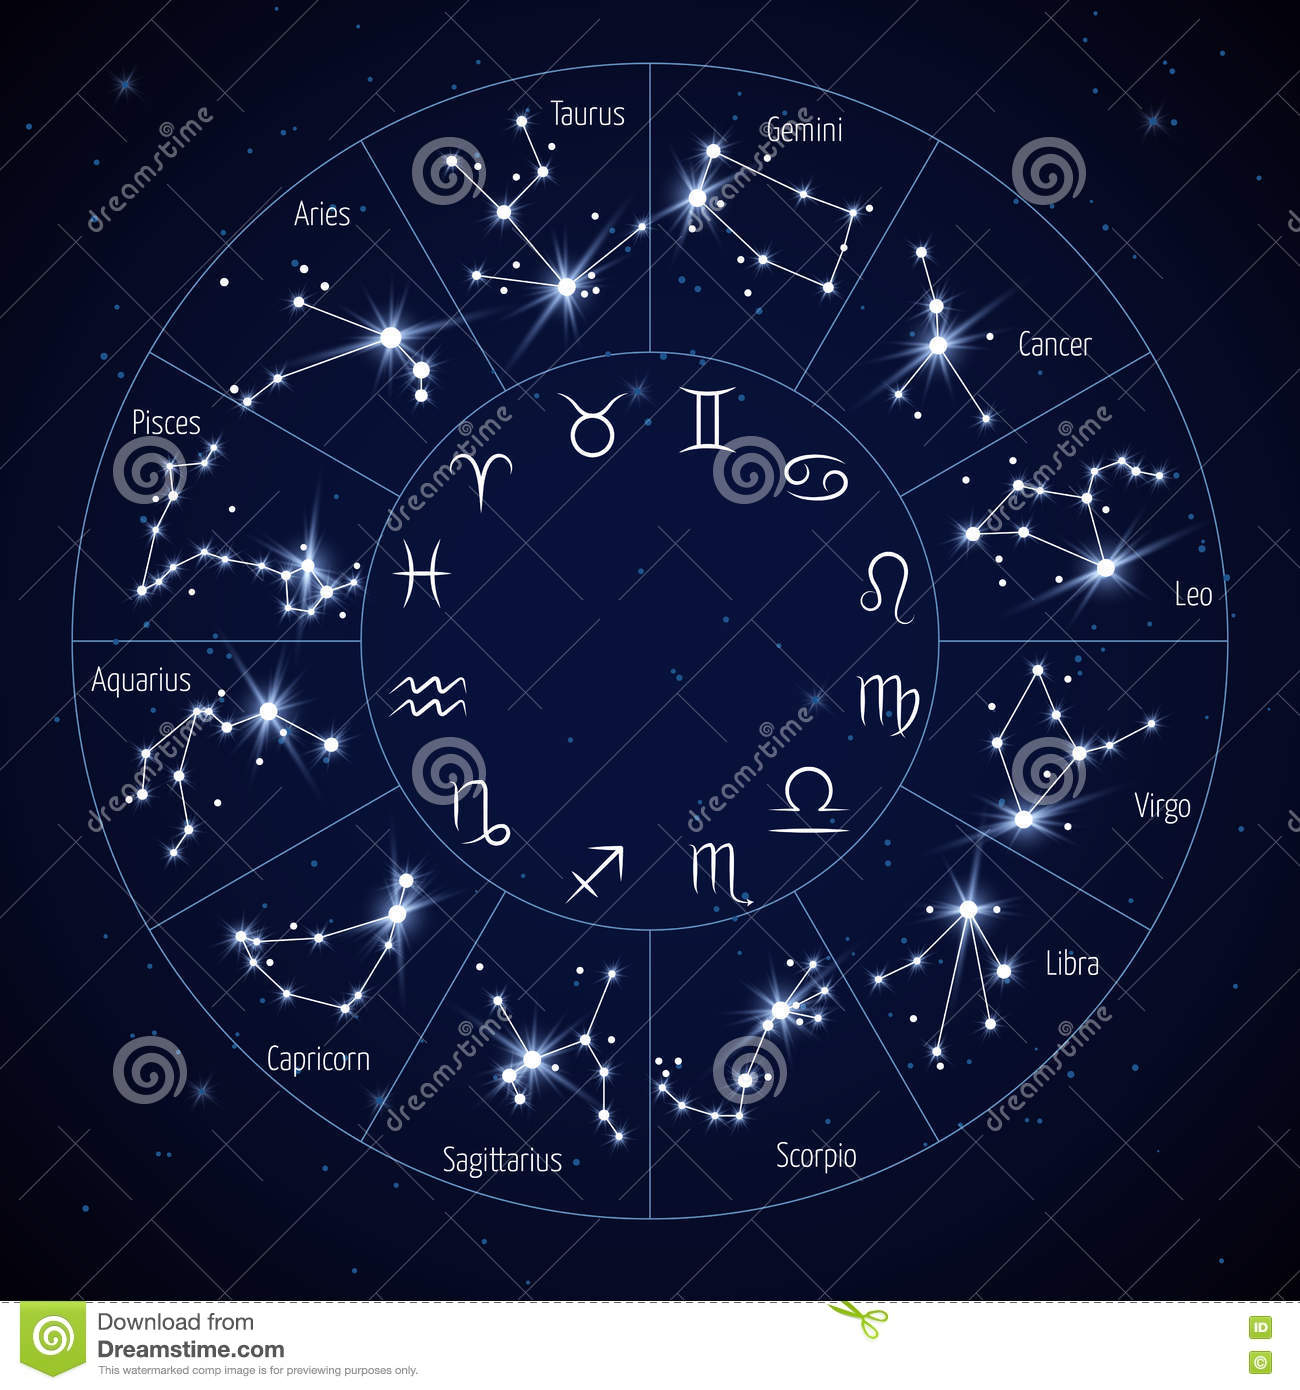 leo constellation how to draw